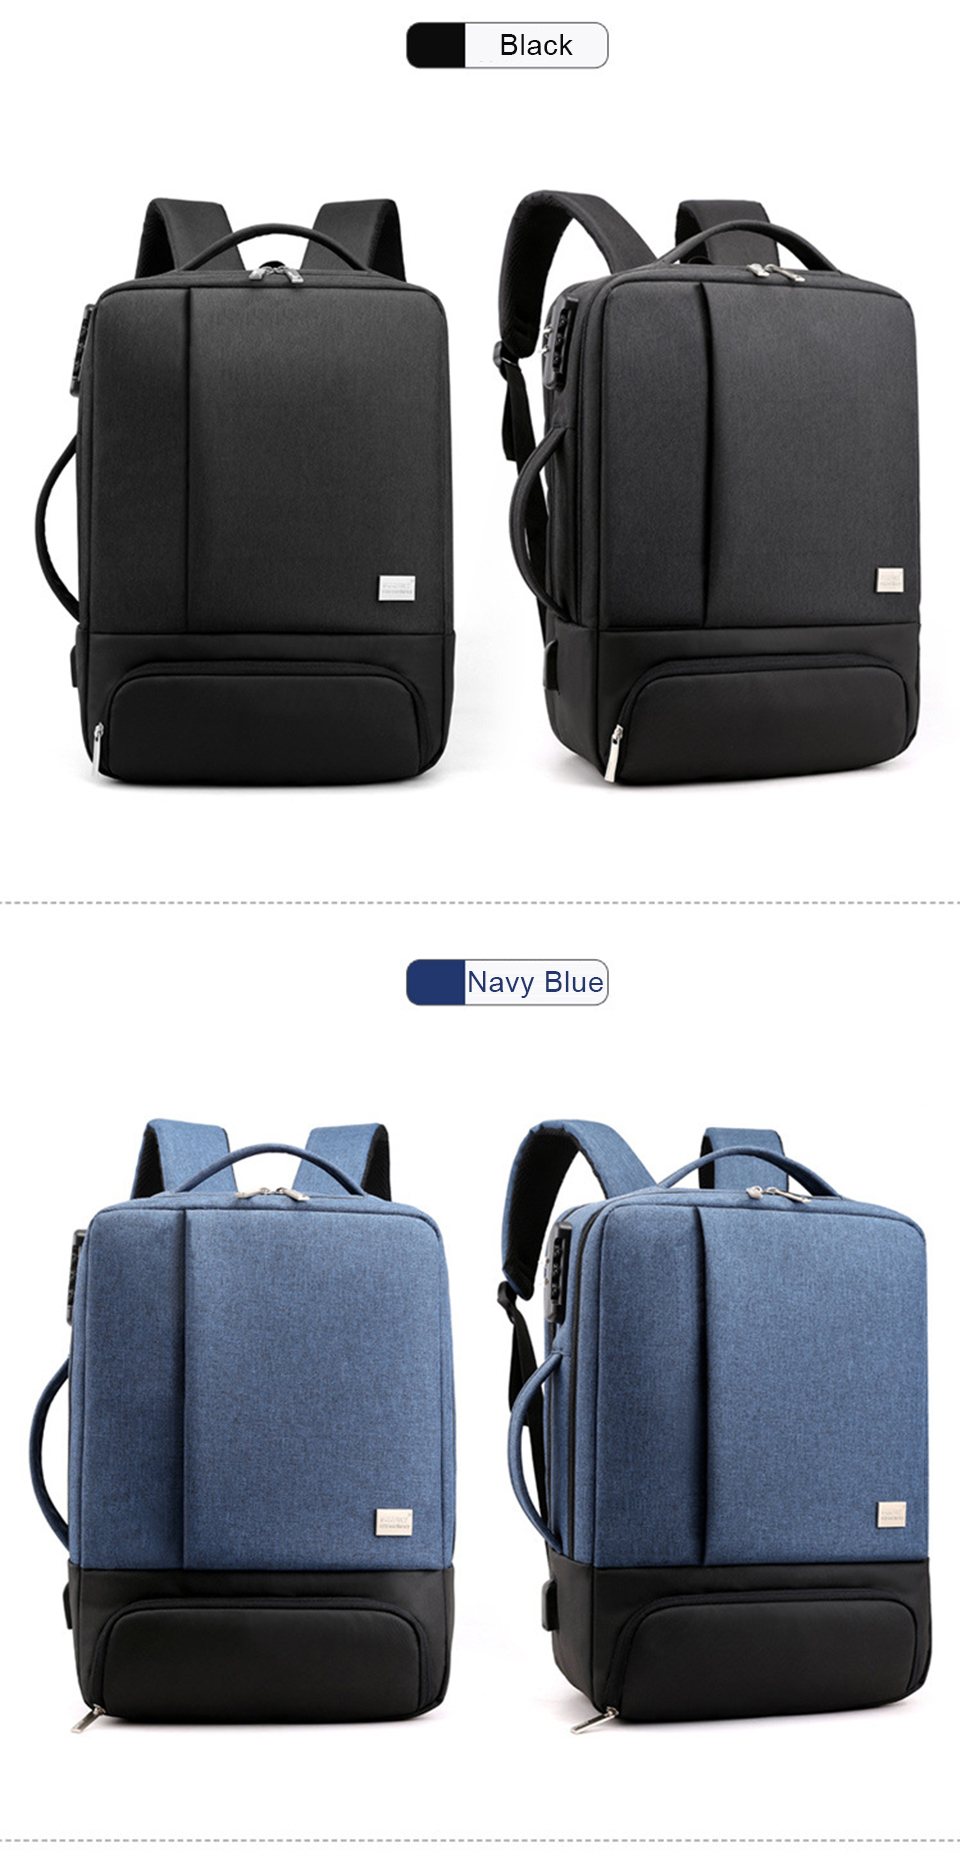 Laptop-Backpack-17-Inch-15.6-Anti-Theft-Backpack-Men-Business-Back-Pack-Male-Notebook-Travel-Student-Women-Bagpack-Office-Bags_12